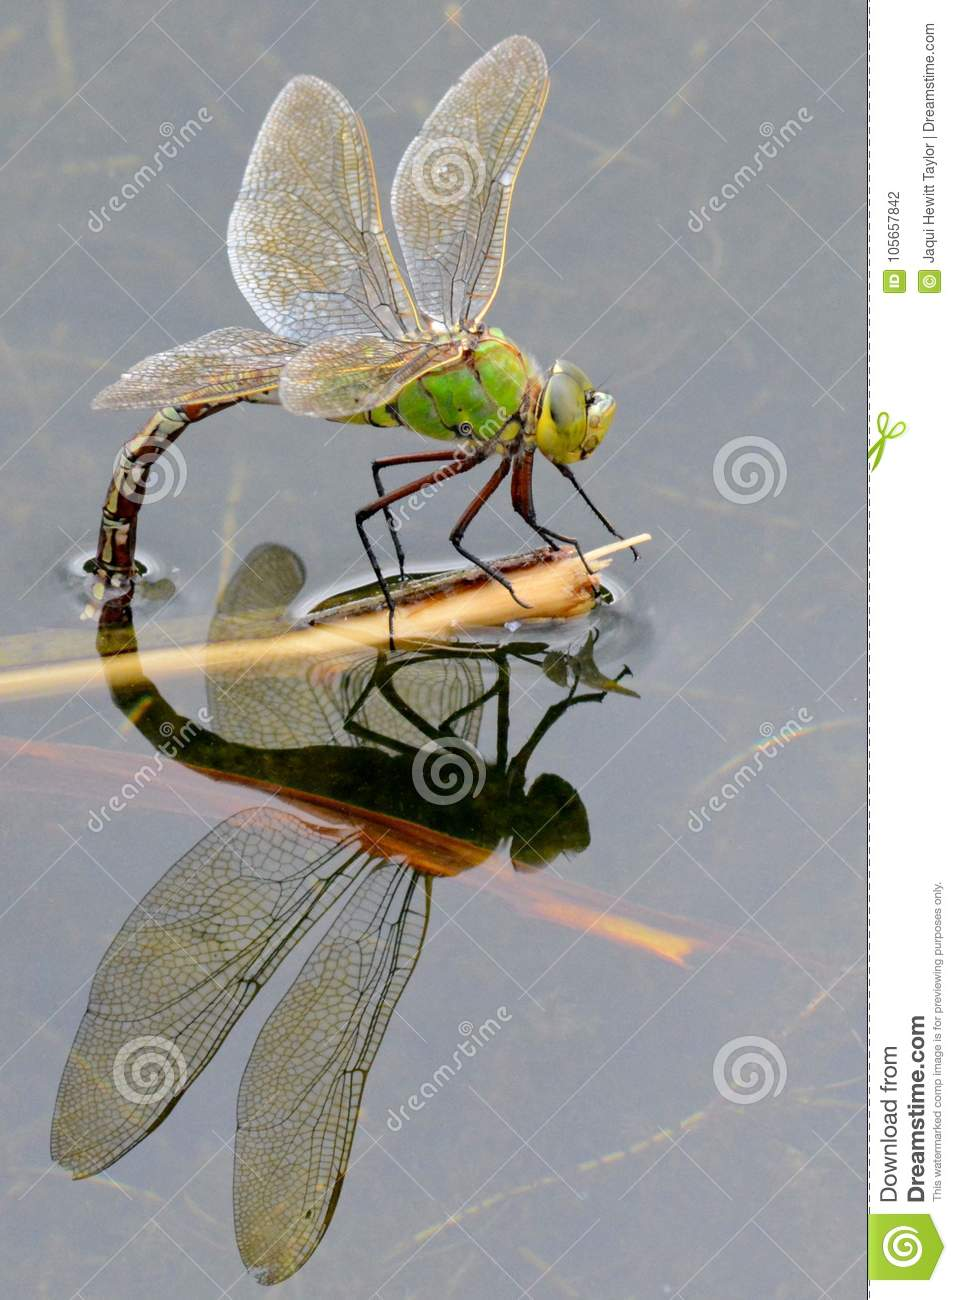 A dragonfly reflected in the water